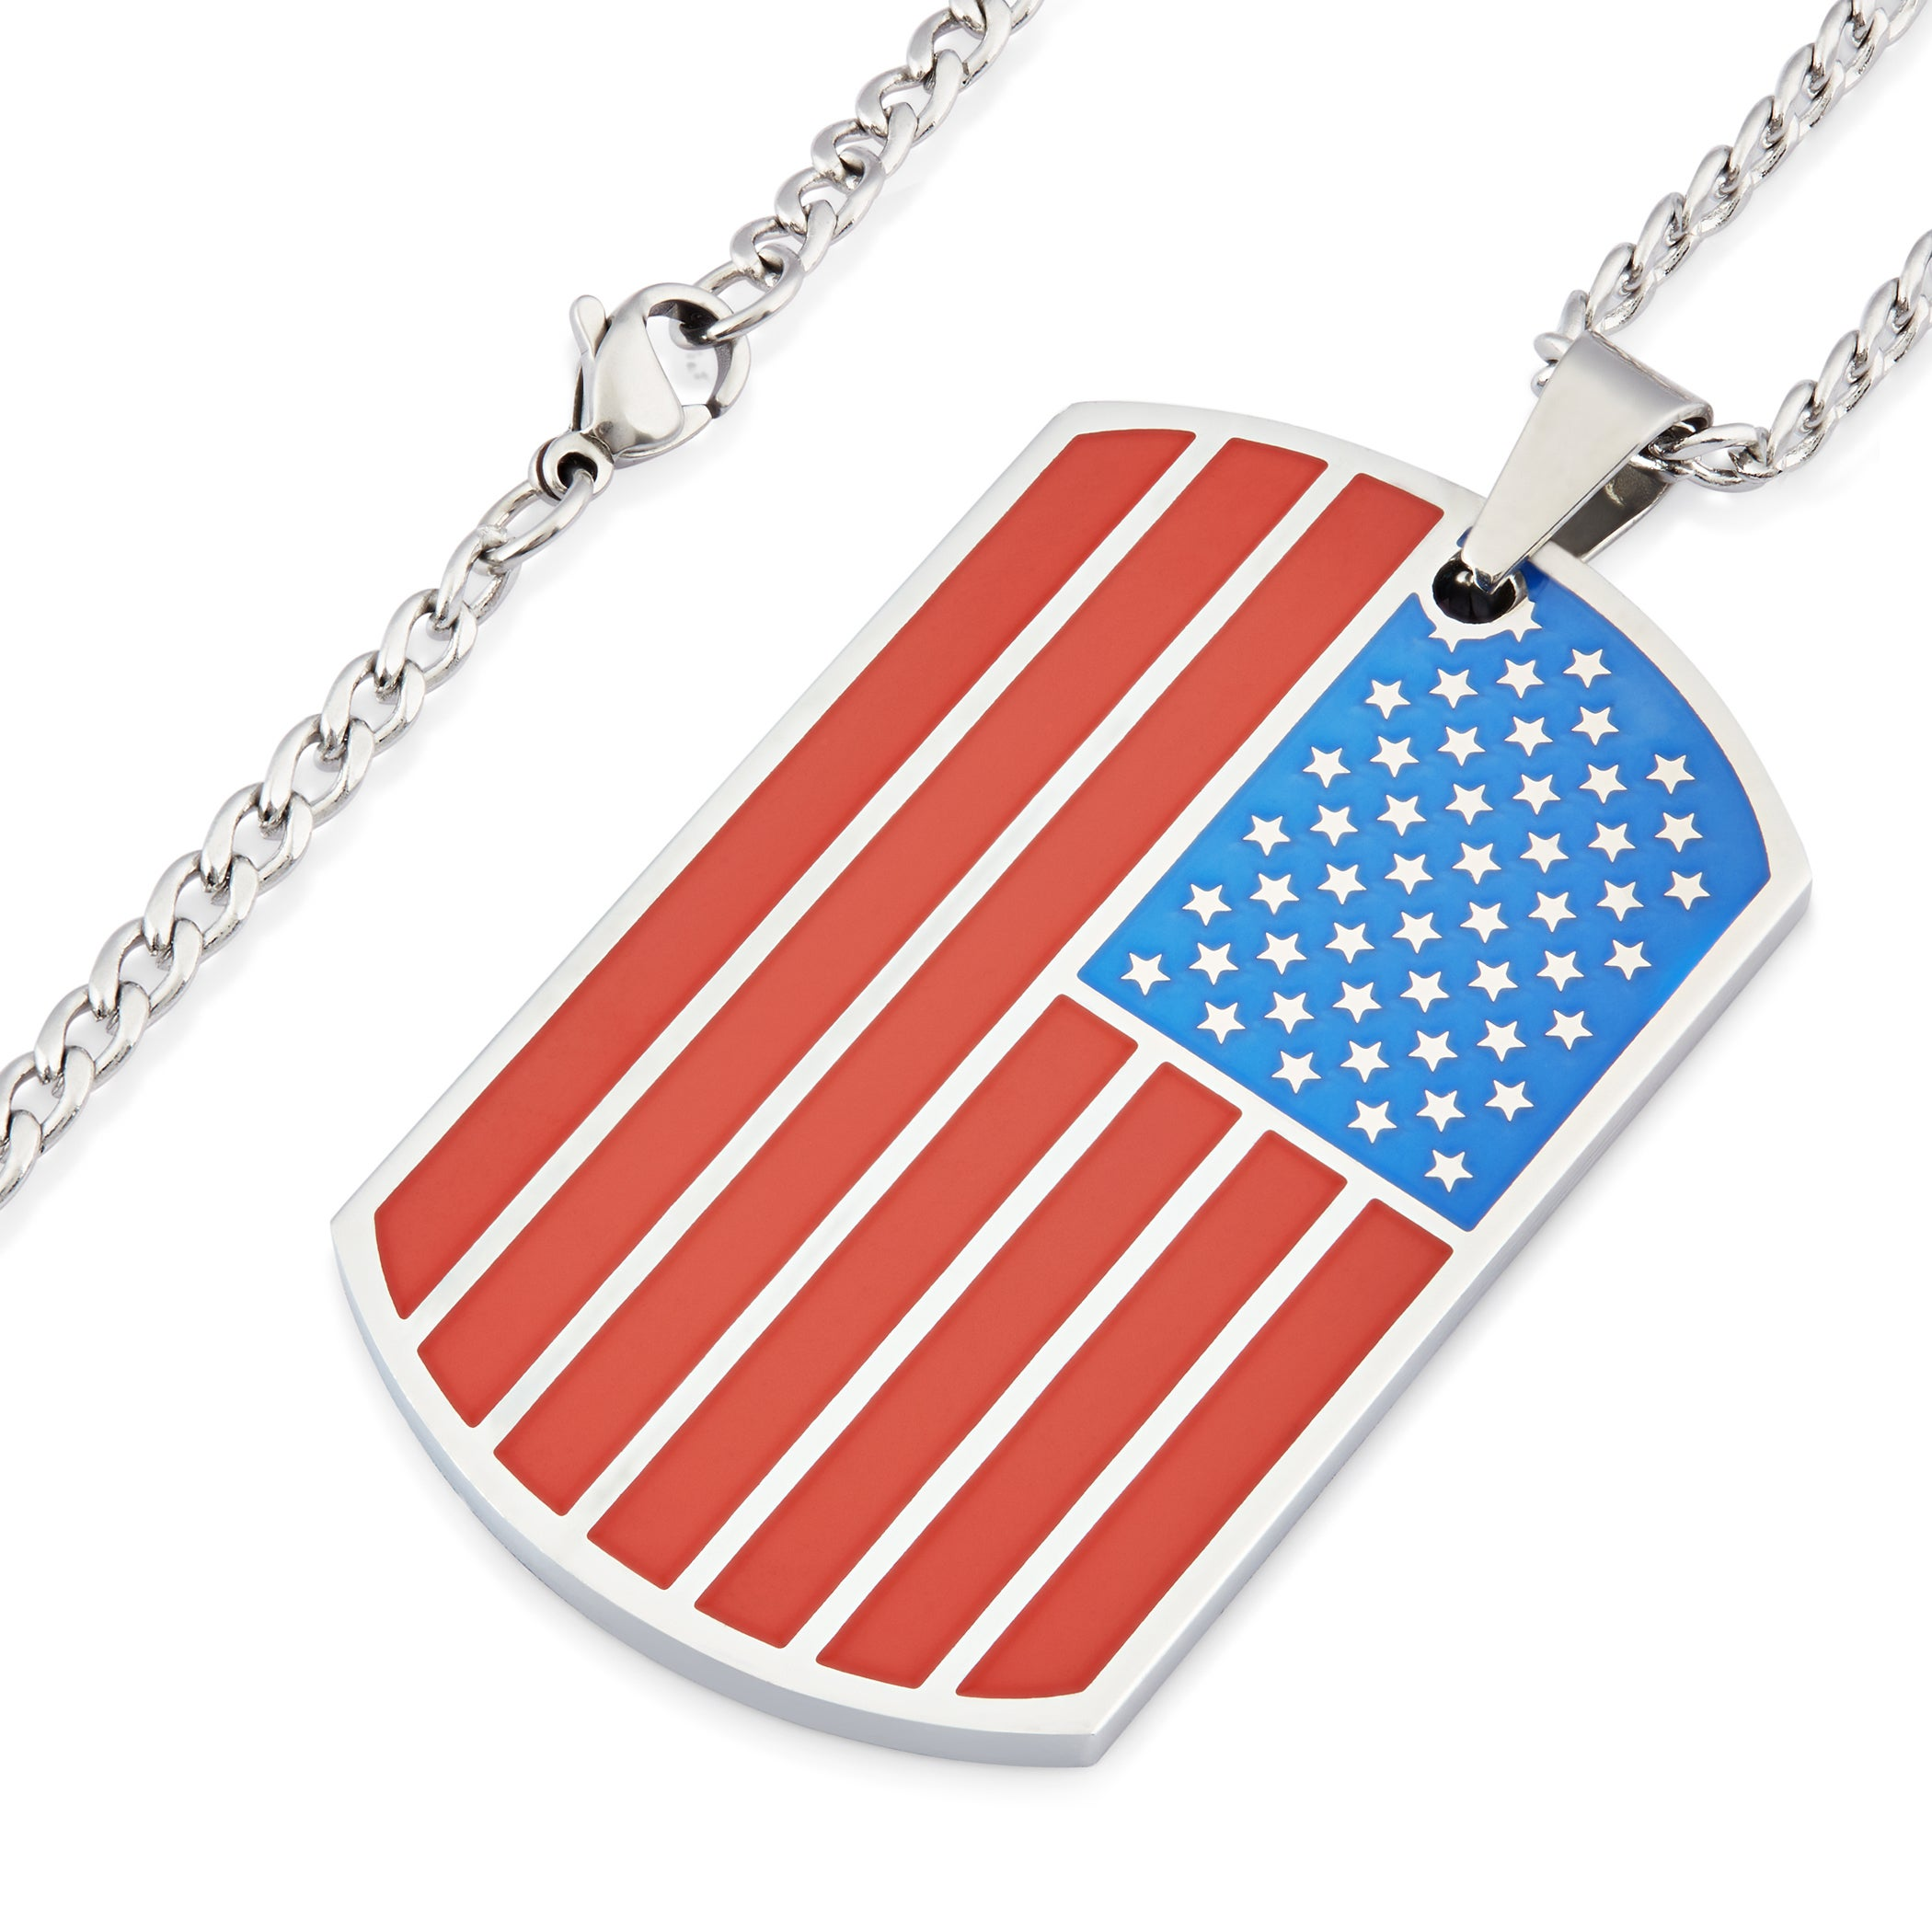 flag hill kentucky cutlery product red silver necklace american